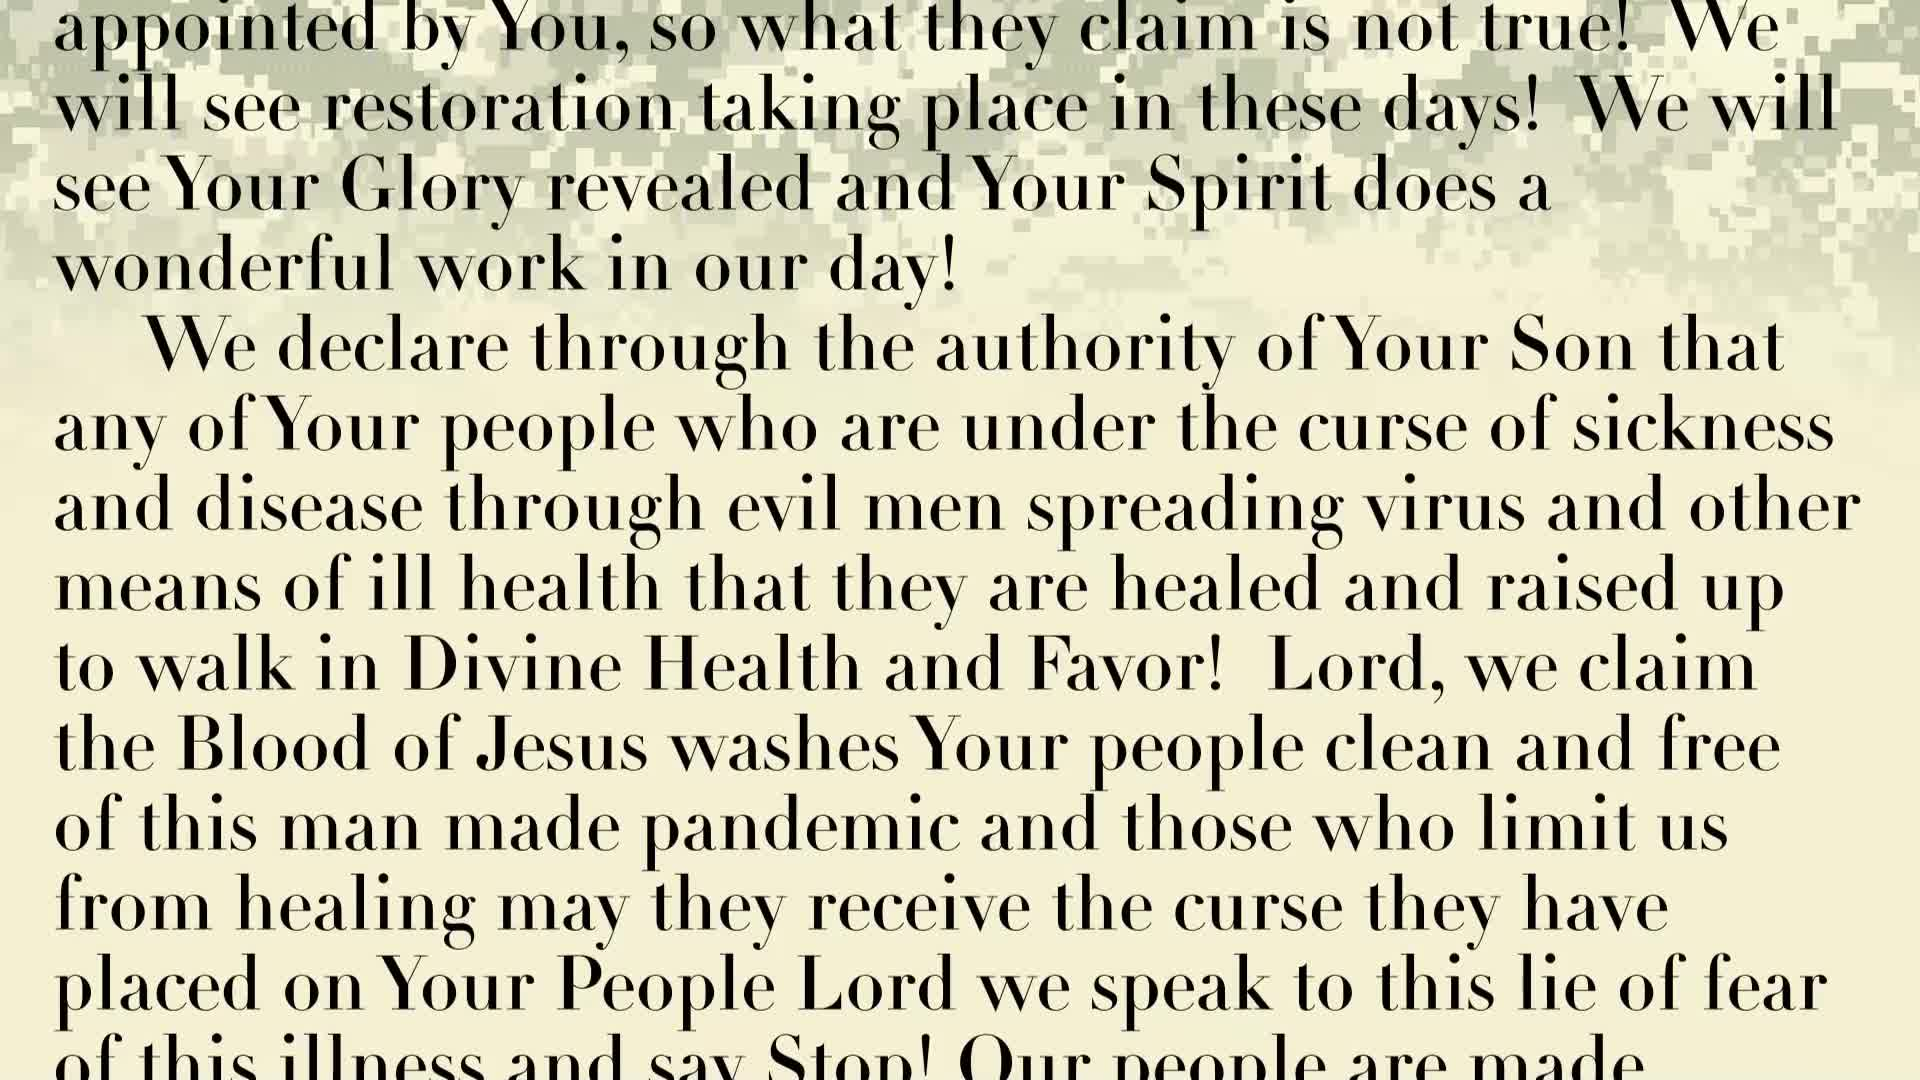 PRAYER FOCUS: THE TENSION OF GOODVS. EVIL IS IN US, BUT AS PAUL SAYS: THANK GOD FOR JESUS THE CHRIST!